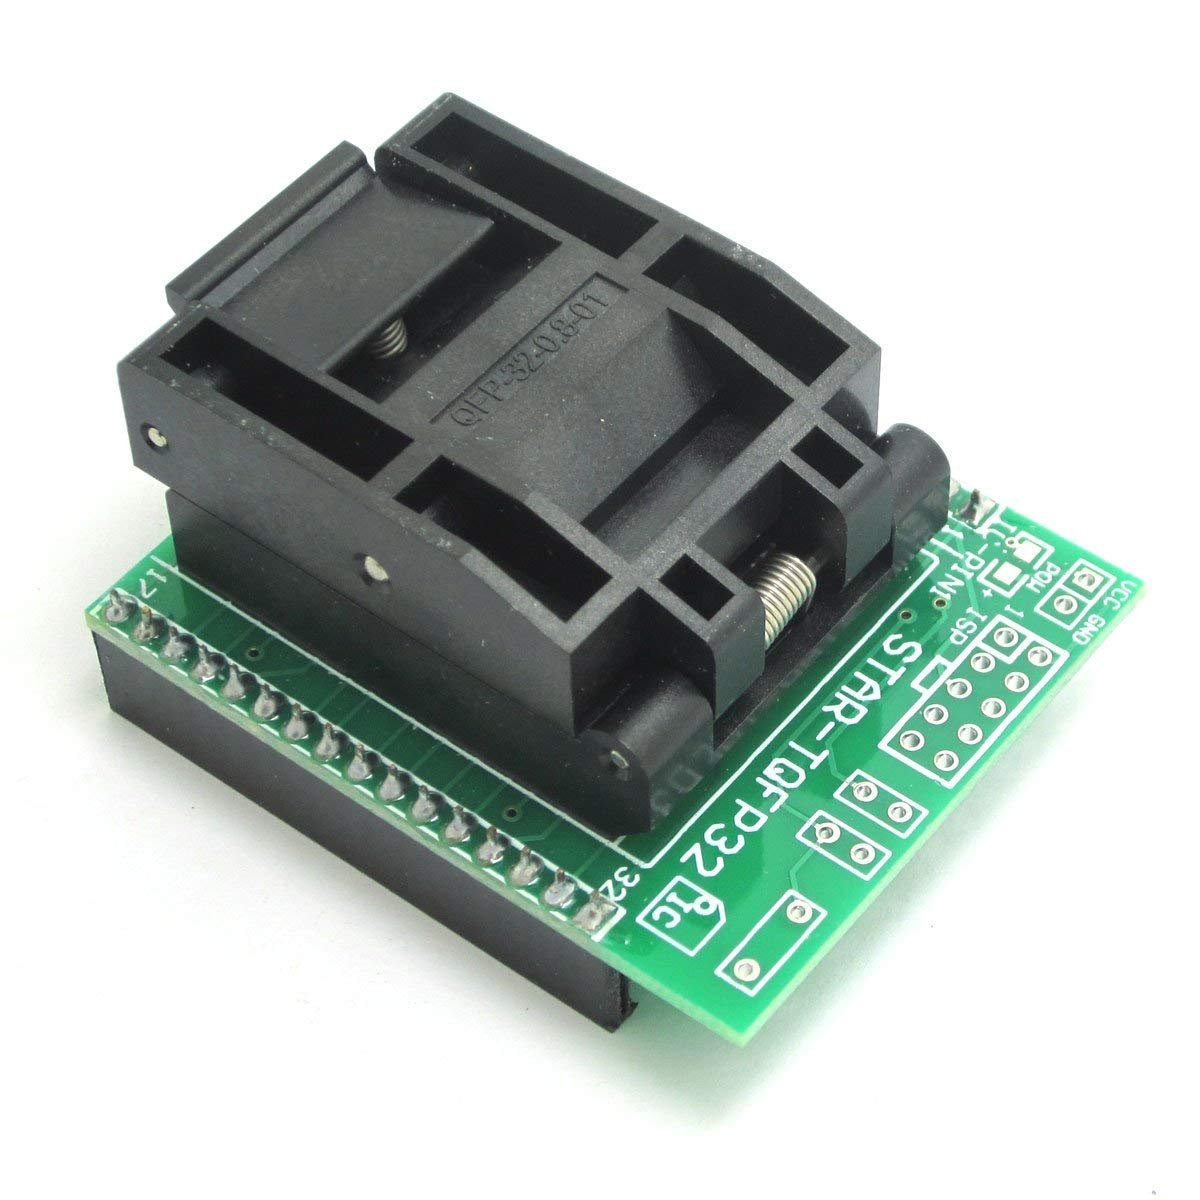 ARCELI Universal IC Adapter Socket LQFP TQFP QFP32 to DIP28 TQFP32 to DIP32 IC Adapters ATMEL AVR Chips 00197